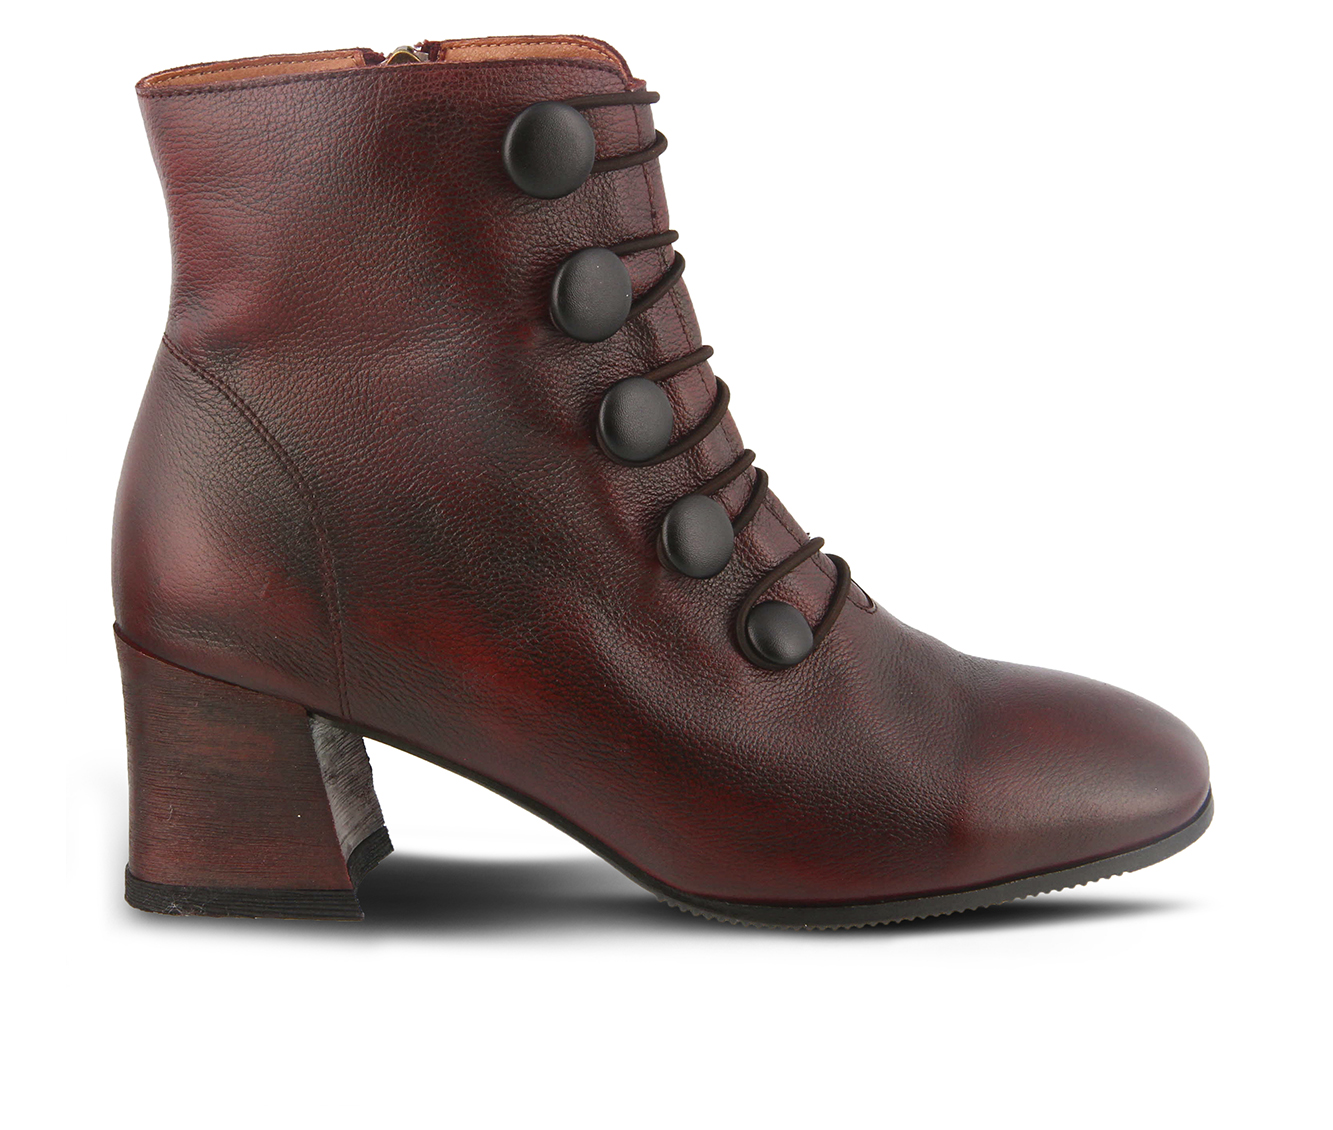 L'Artiste Mitzie Women's Boots (Red Leather)